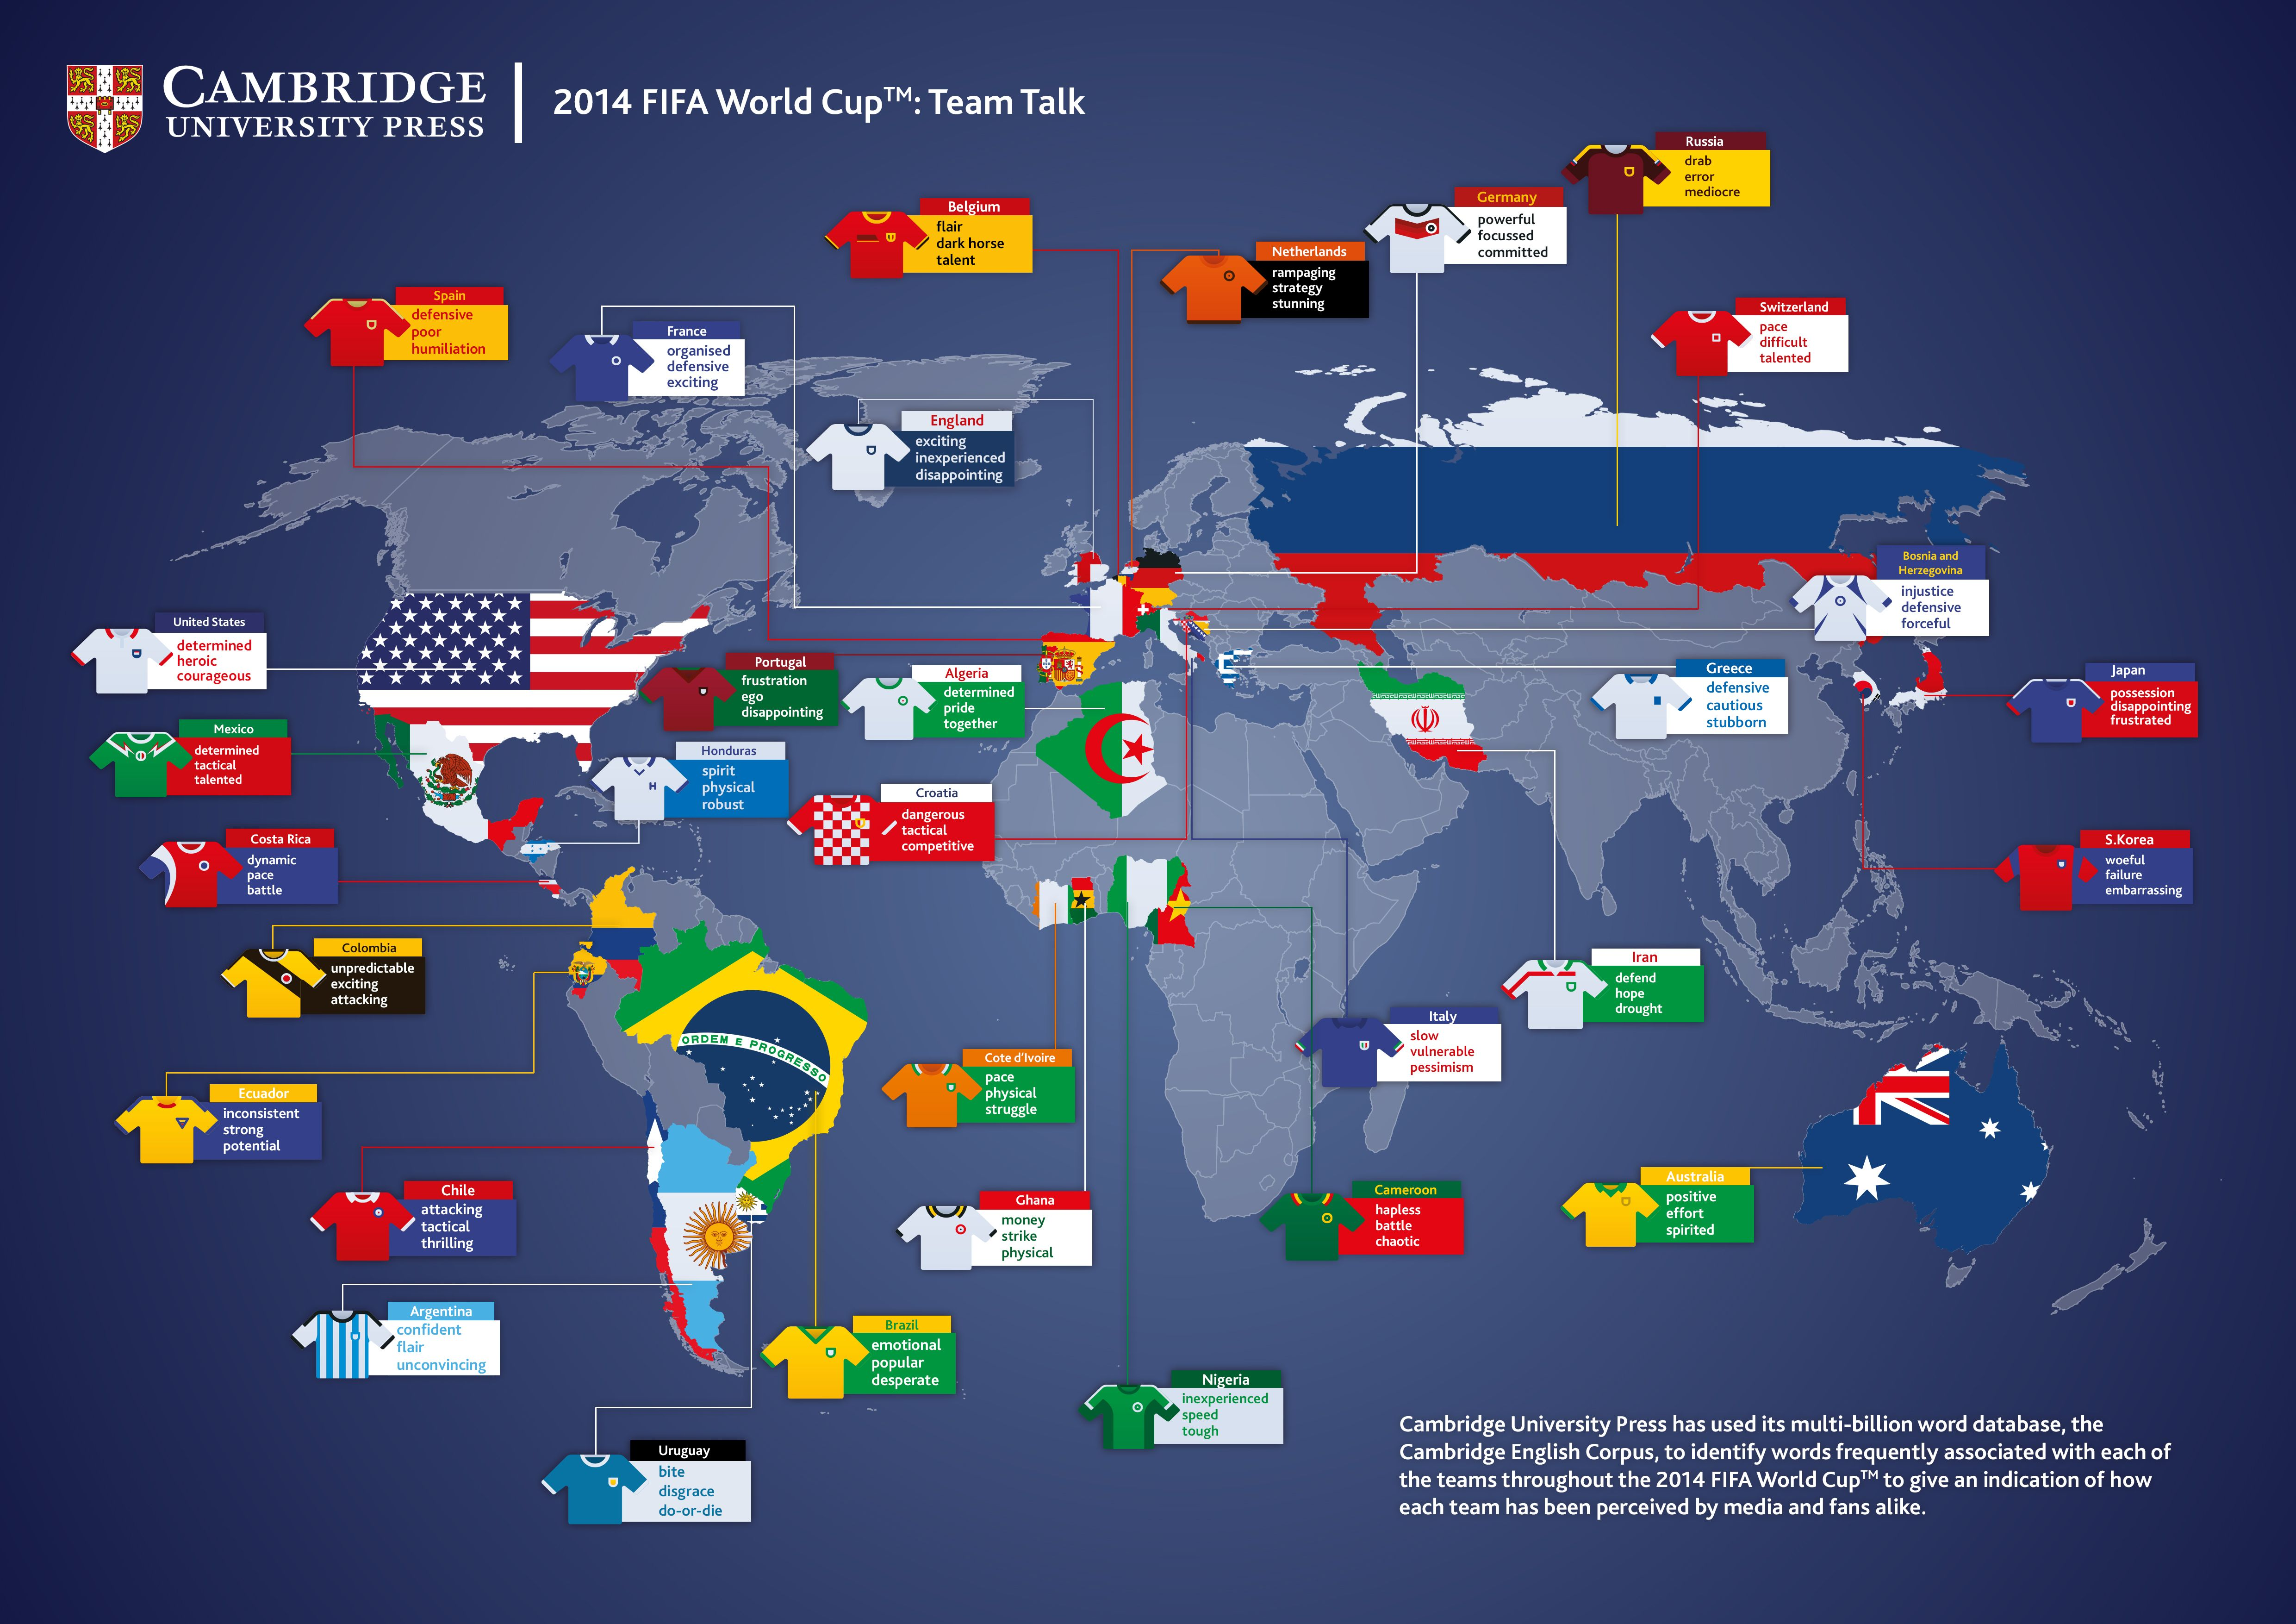 Fifa world cup teams described in 3 words infographic fifa world cup teams described in 3 words infographic gumiabroncs Image collections